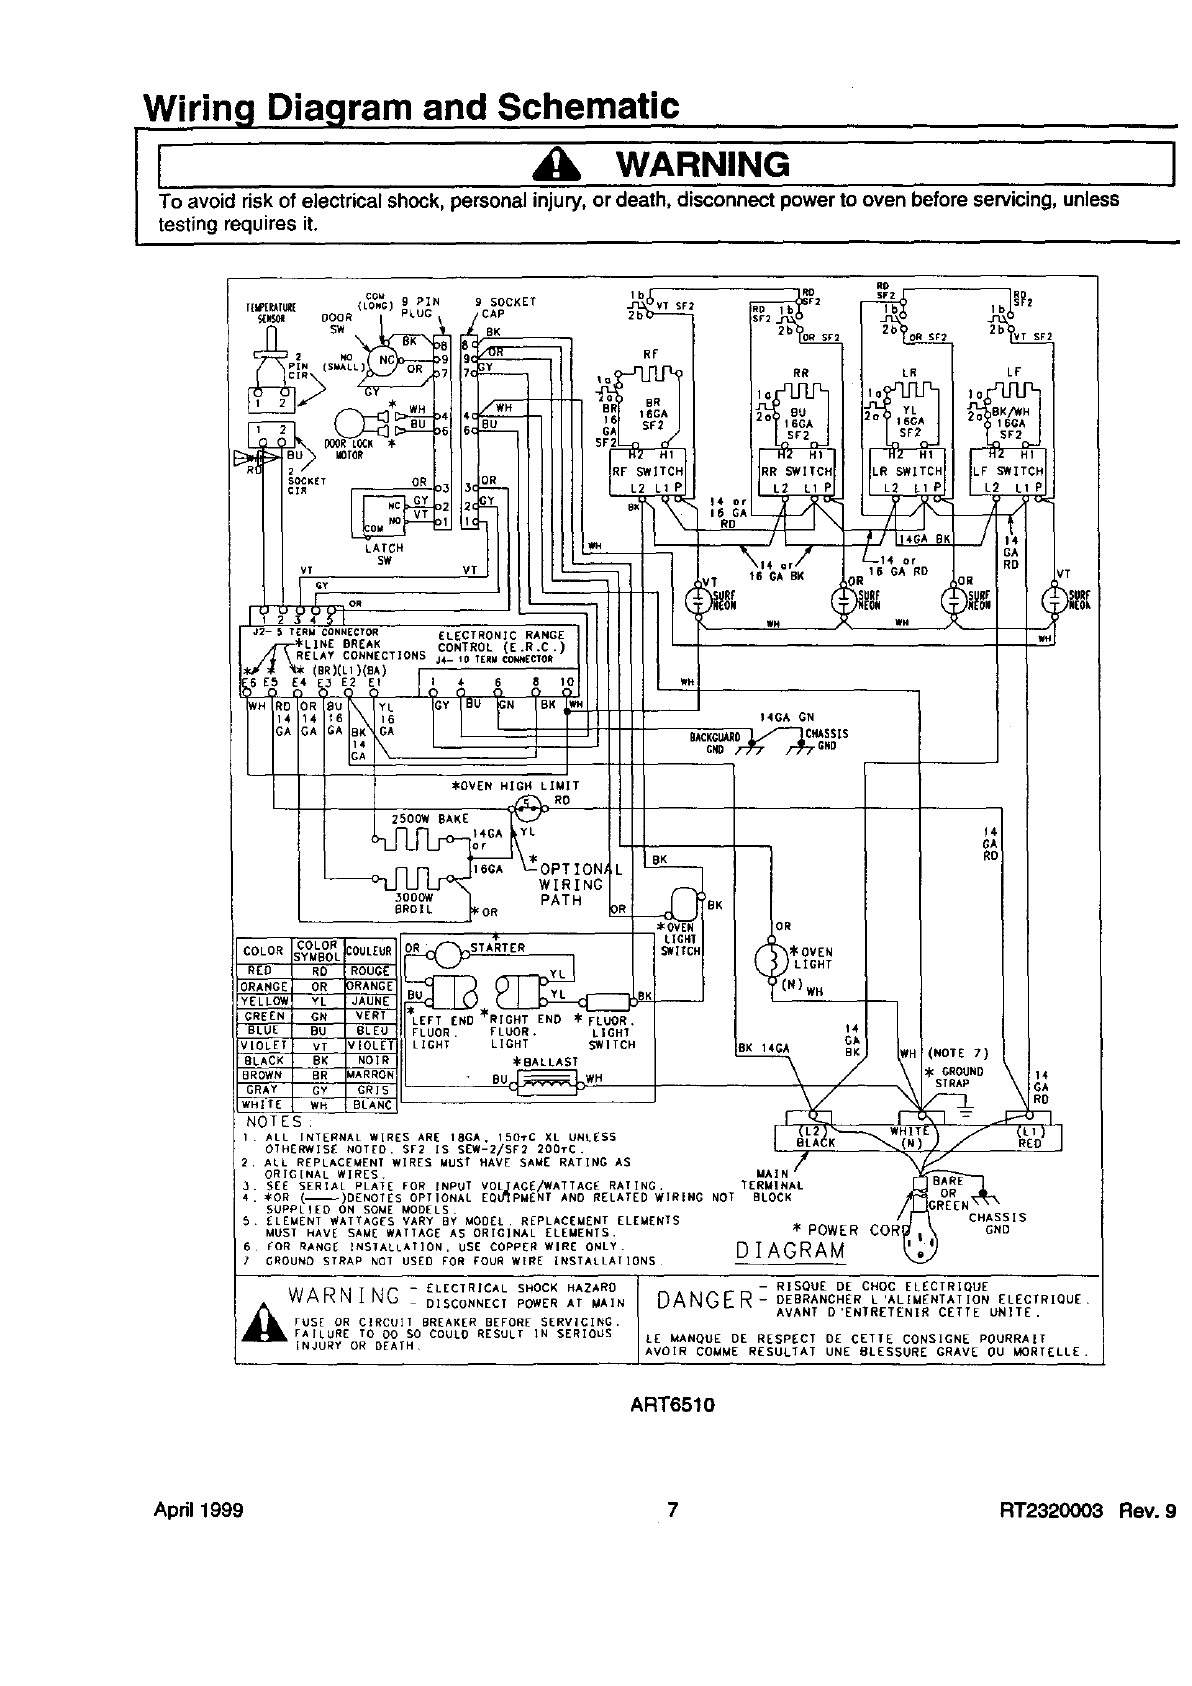 amana electric dryer wiring diagram  amana  free engine image for user manual download amana dryer ned7200tw wiring diagram amana dryer lea30aw wiring diagram